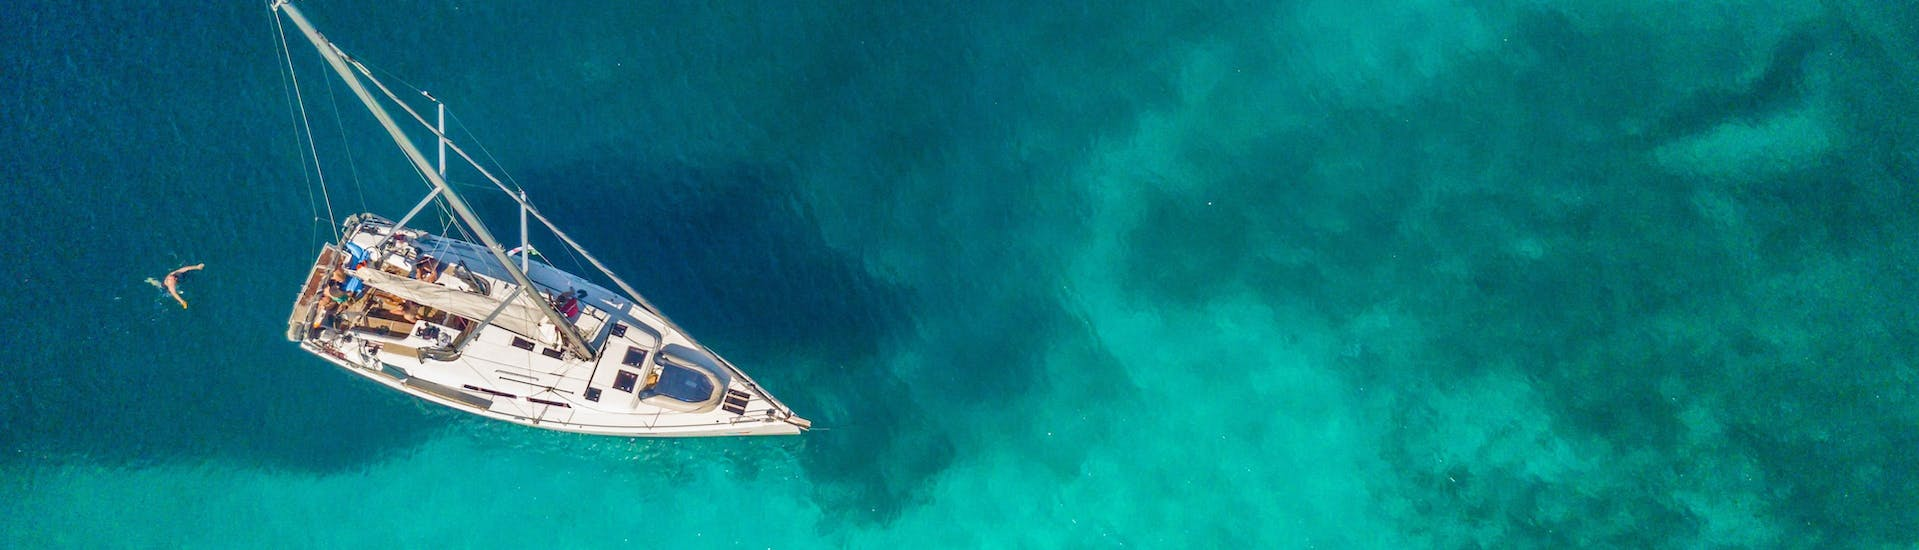 Sailboat from above in emerald water